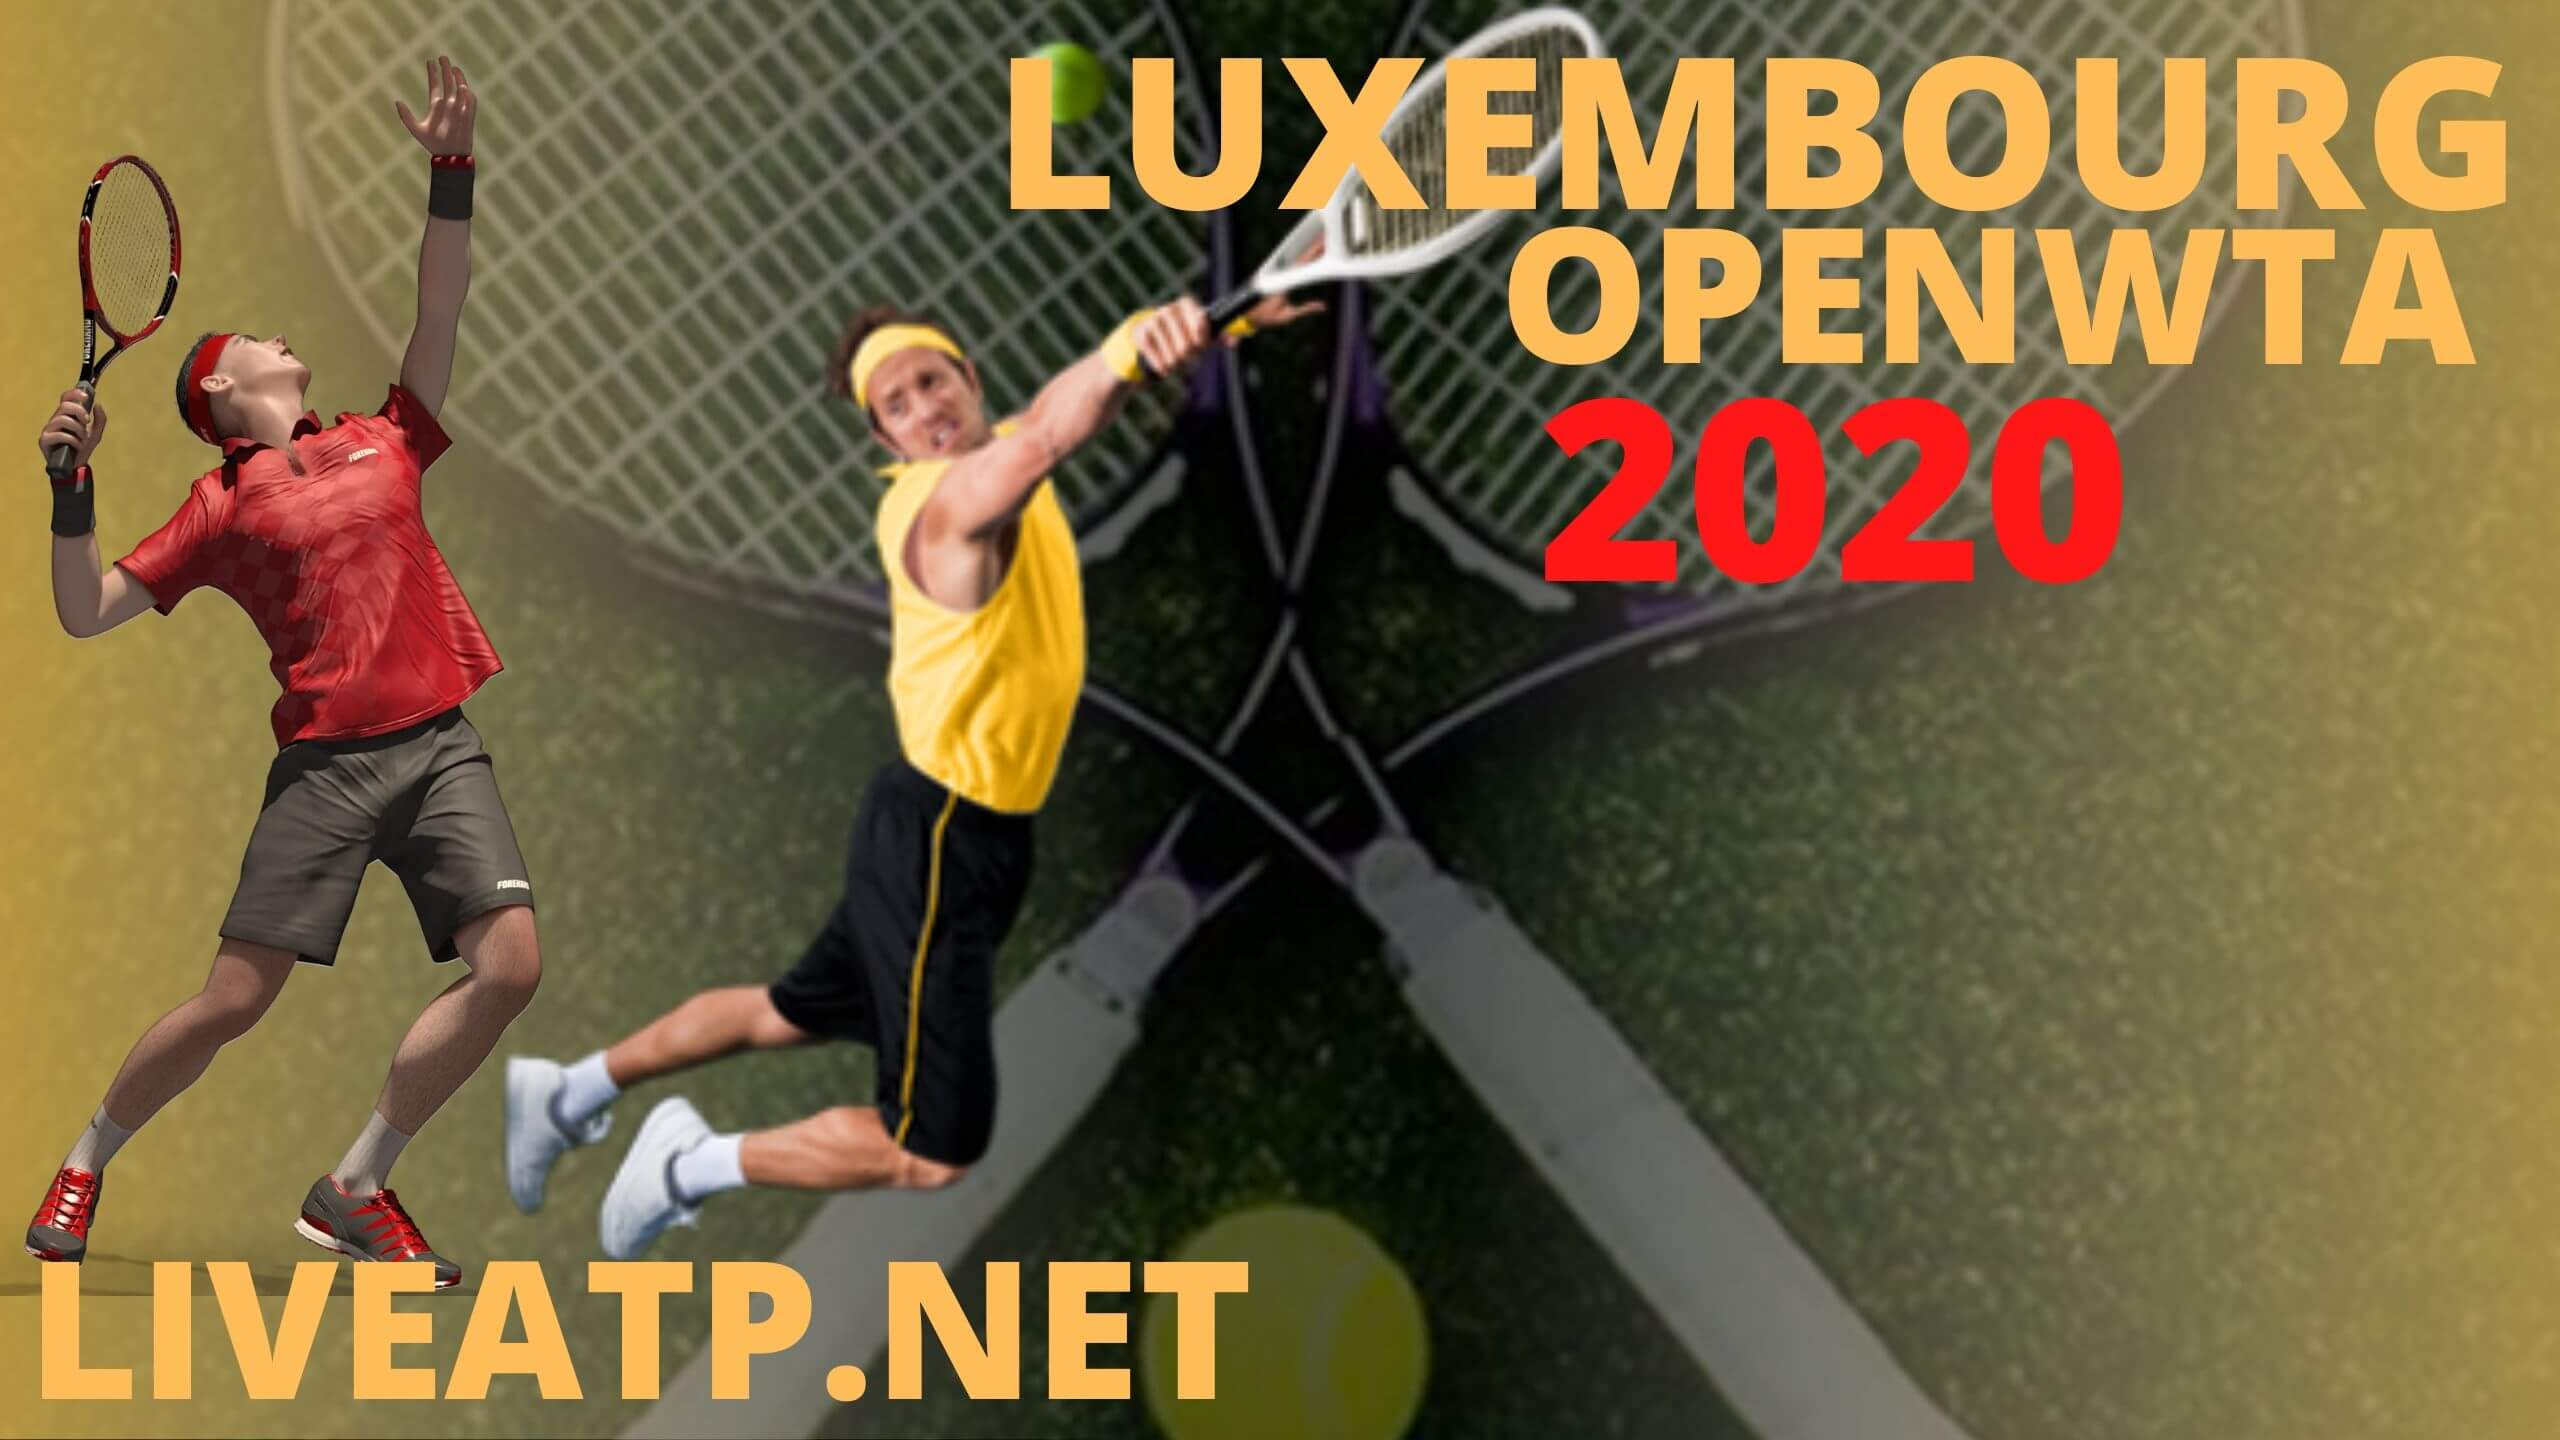 Luxembourg Open Live Stream 2020 | Day 4